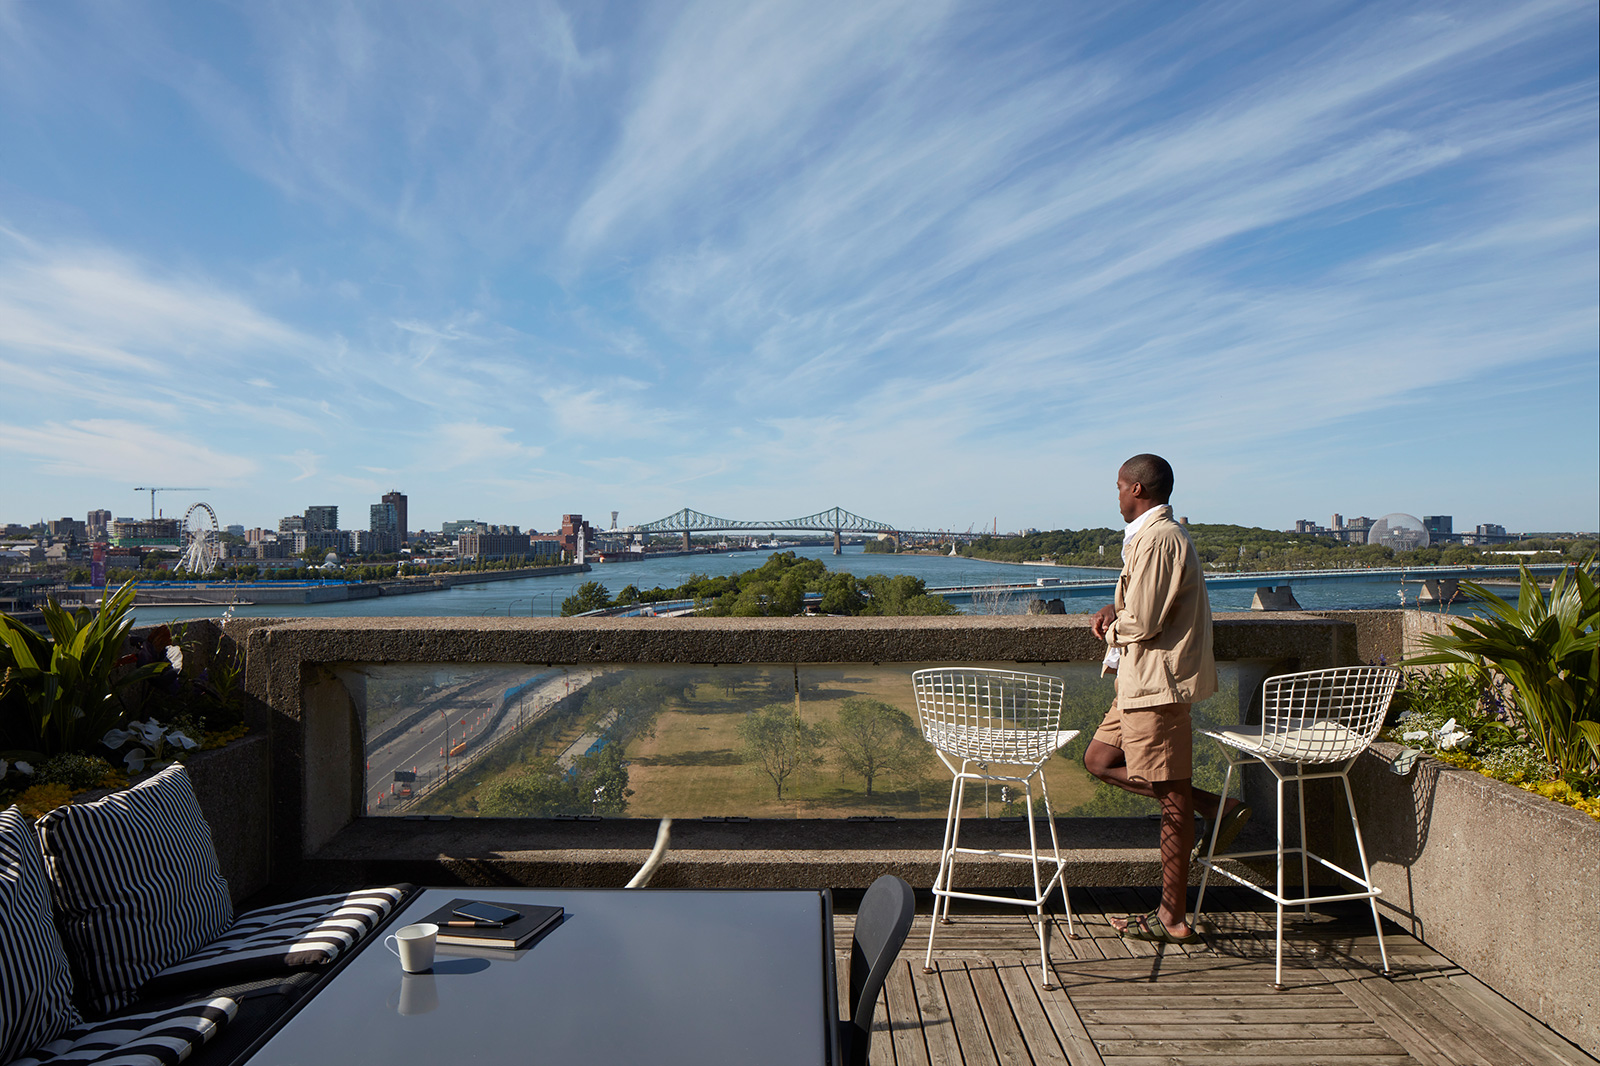 Byron looks out across the St Lawrence River from his garden terrace